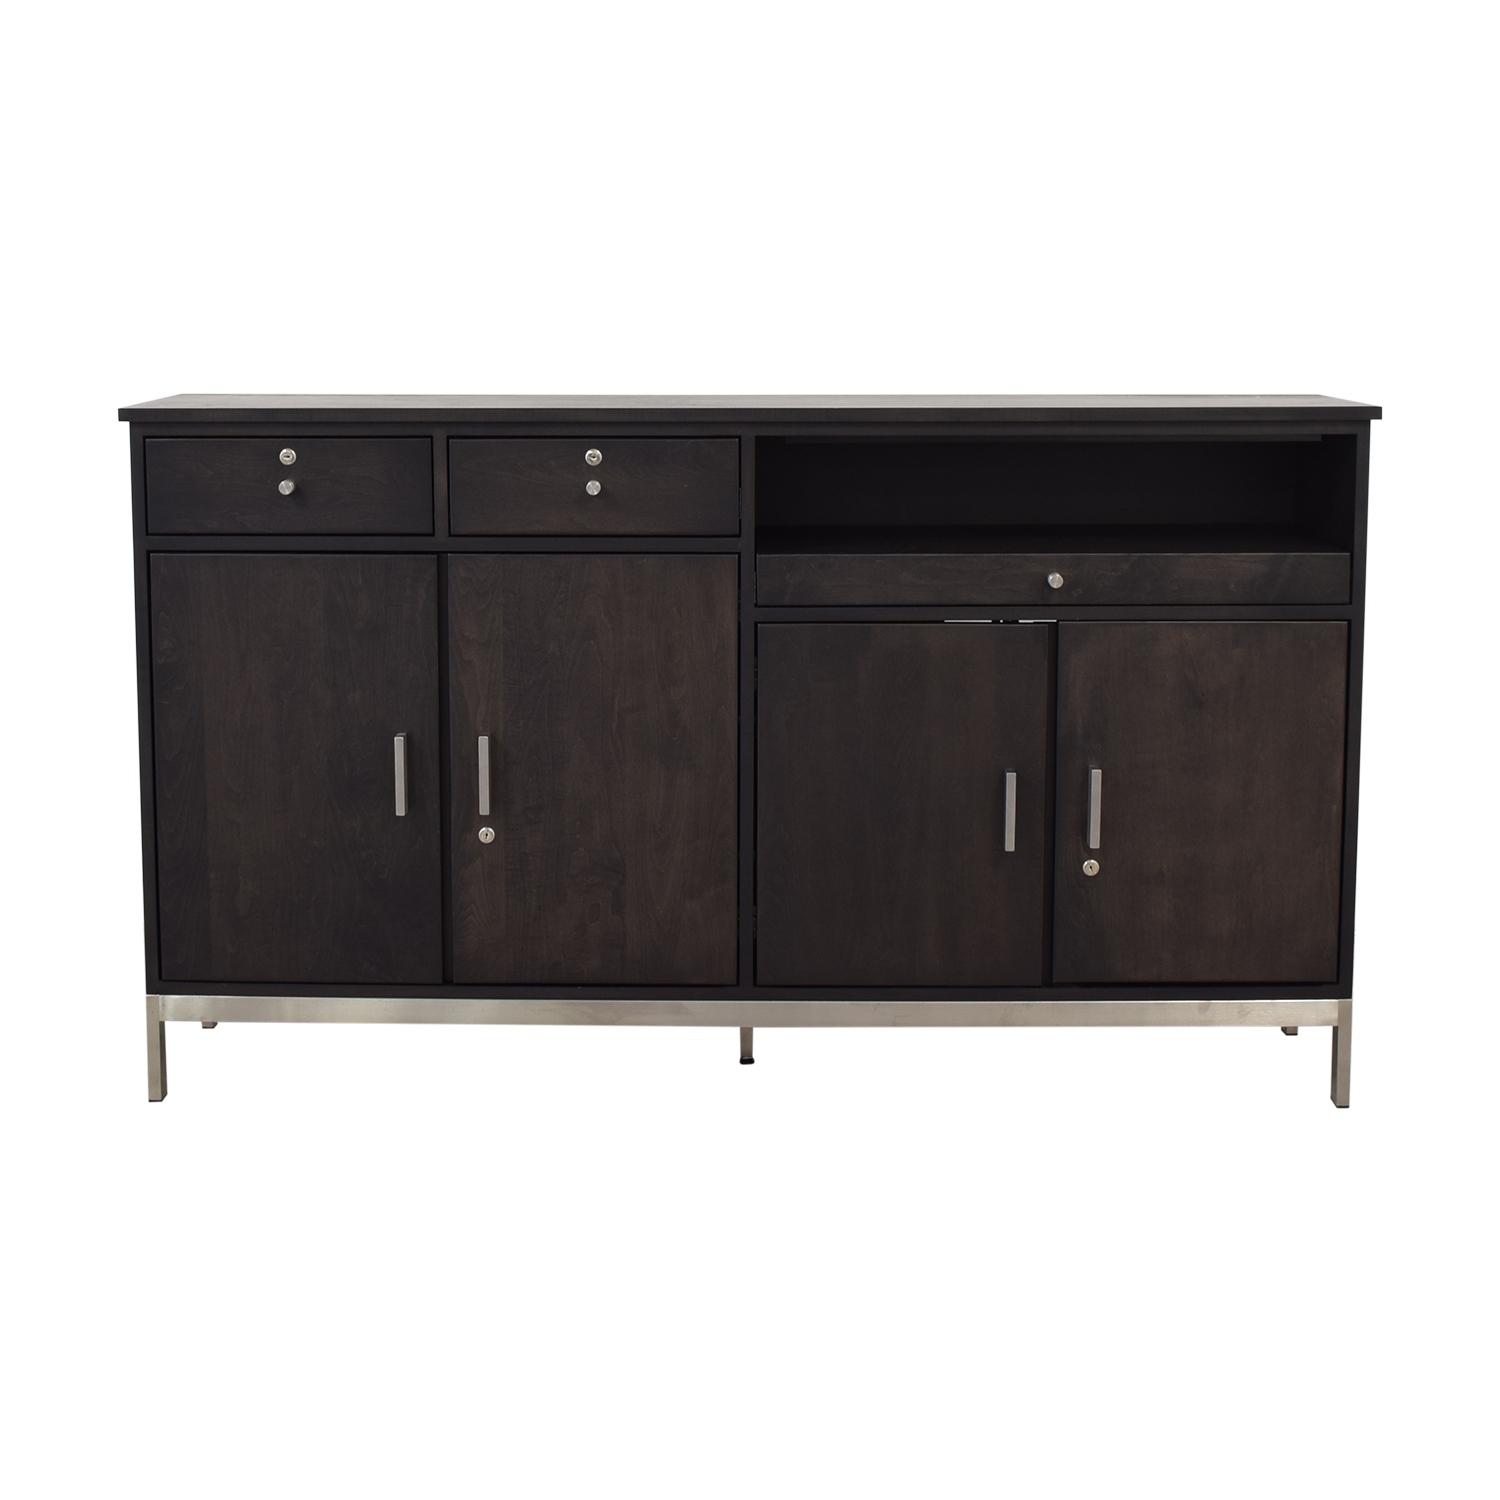 Room & Board Room & Board Two-Drawer Custom Storage Cabinet coupon